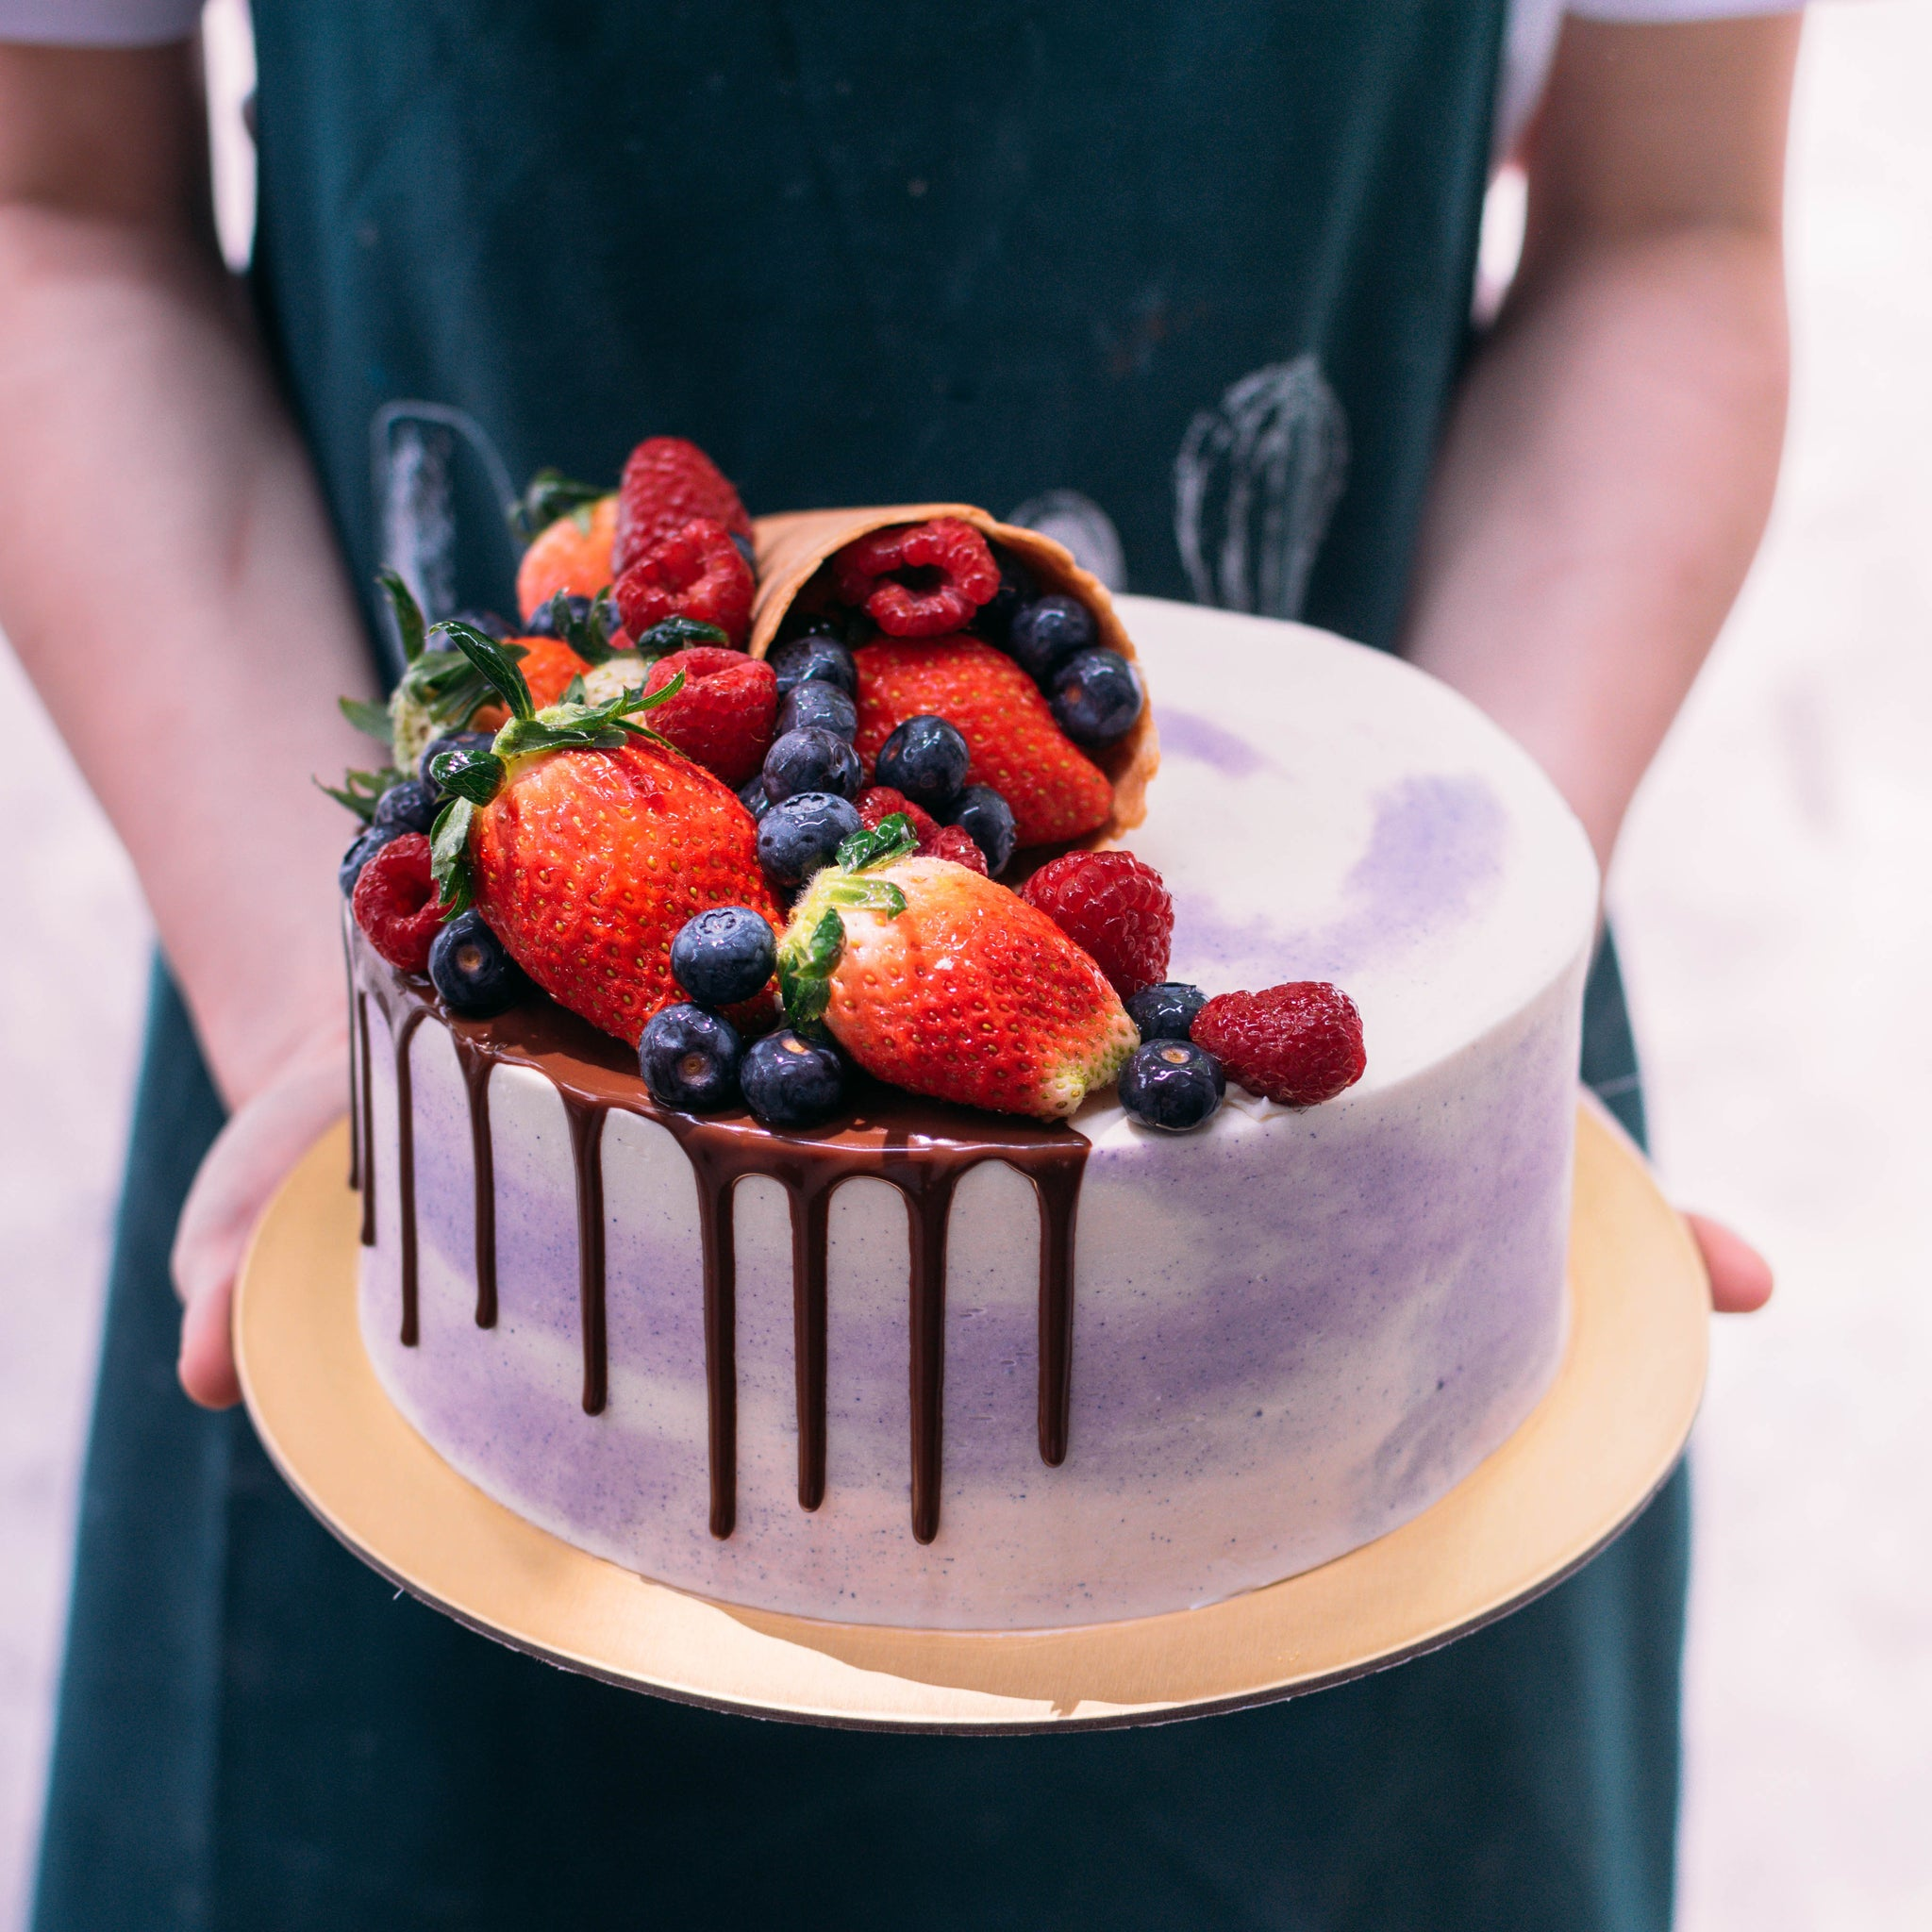 Marbled Cake with Drizzle and Cascading Berries - Custom Bakes by Edith Patisserie